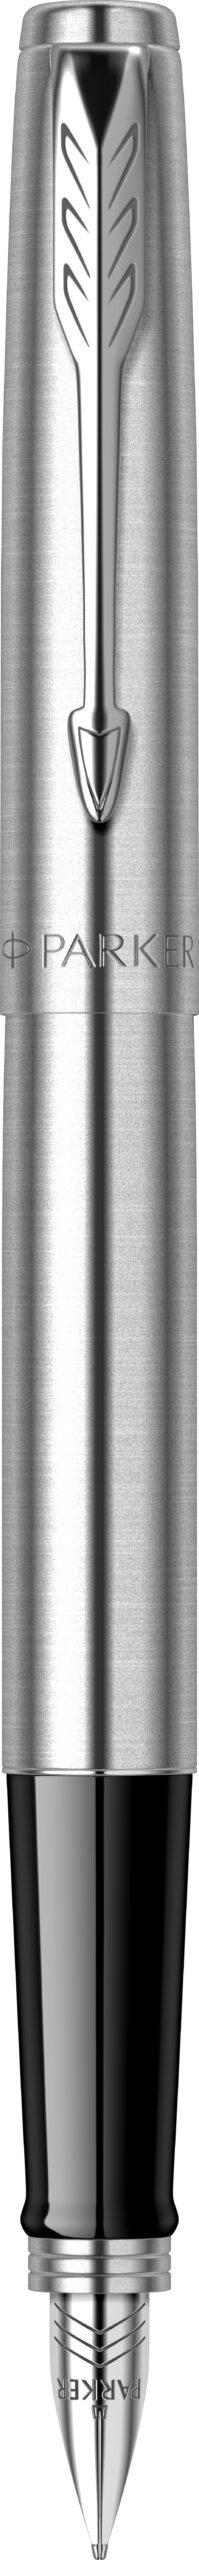 Stainless Steel CT Stilou - Parker 1